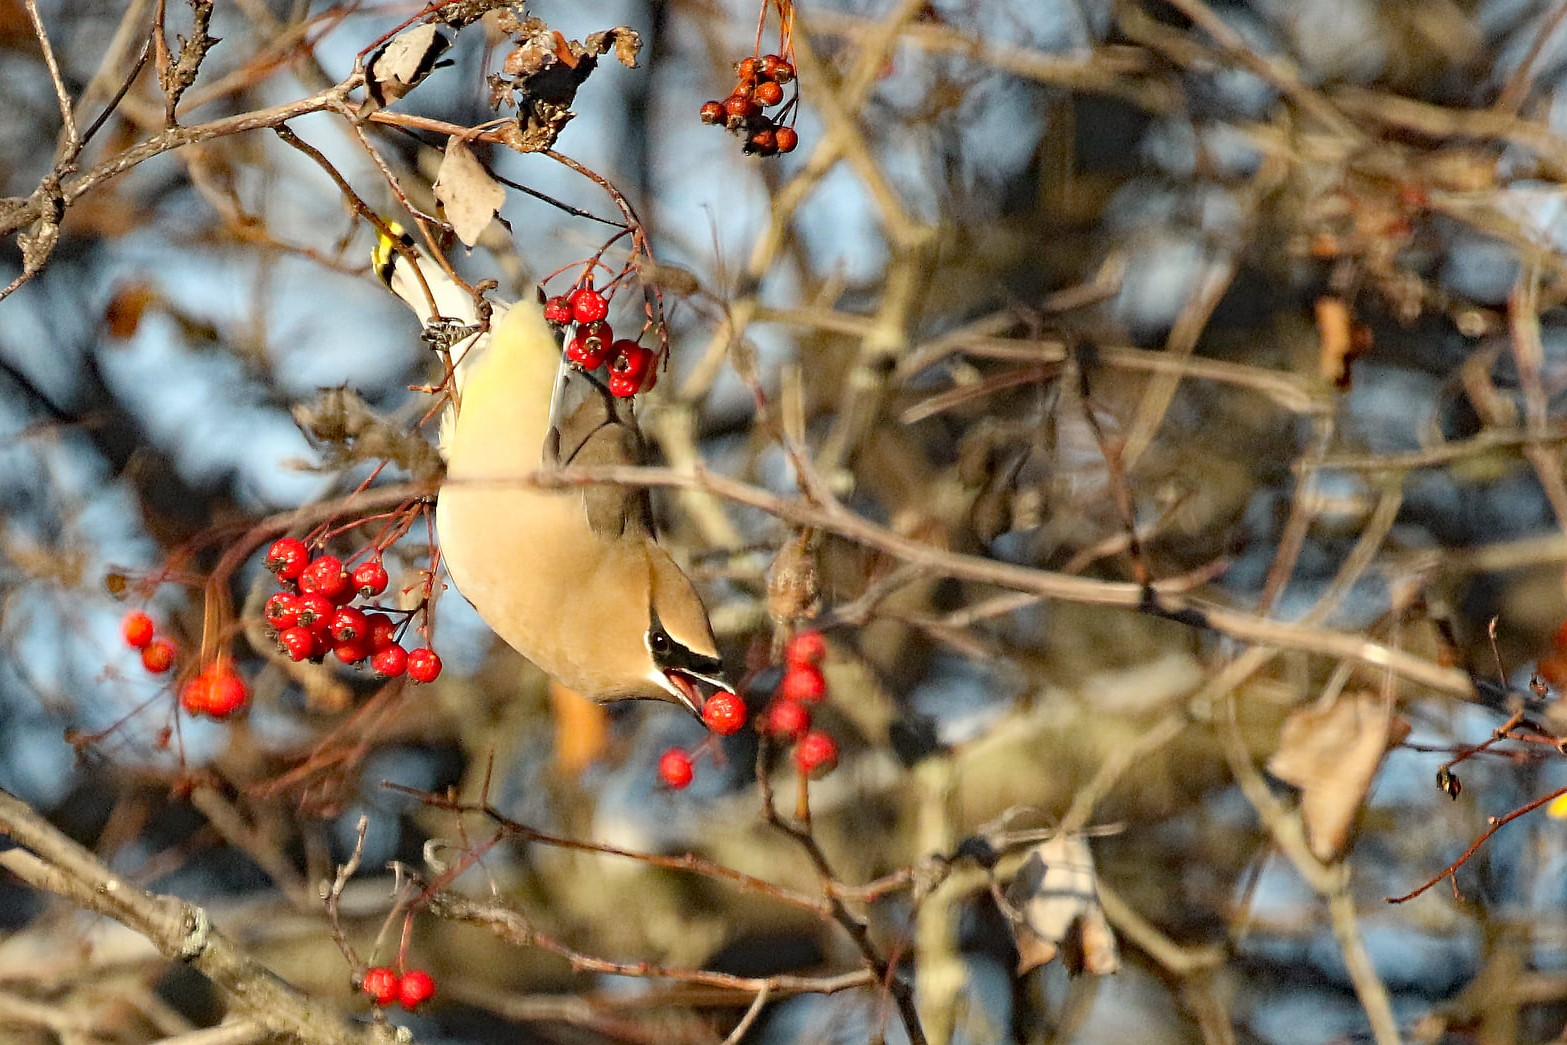 A cedar waxwing leaning down from a branch to eat a red berry